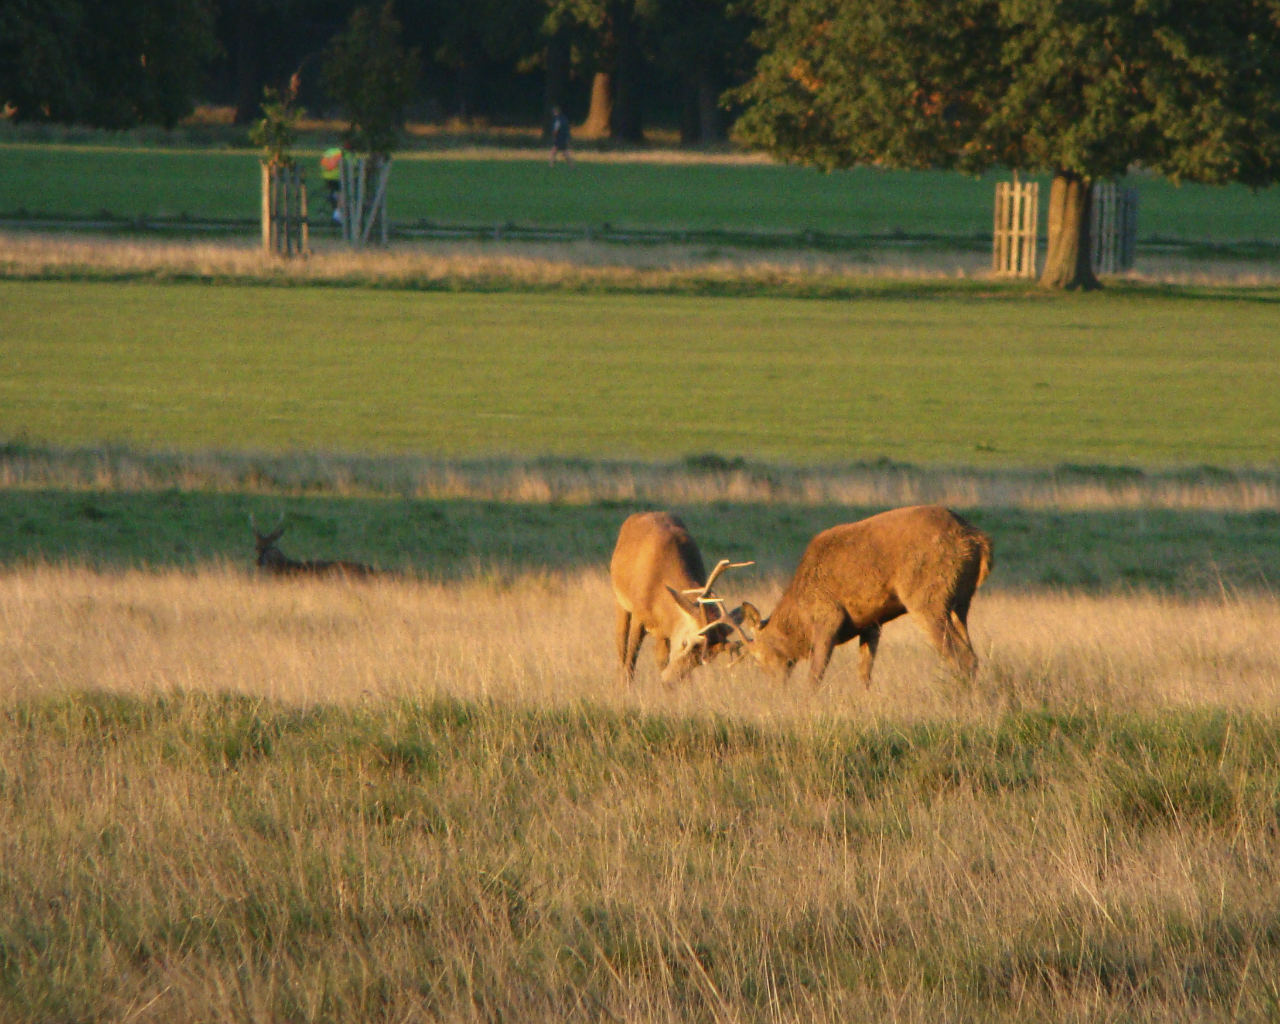 Red deer stags in Richmond Park, London, 30 September 2015